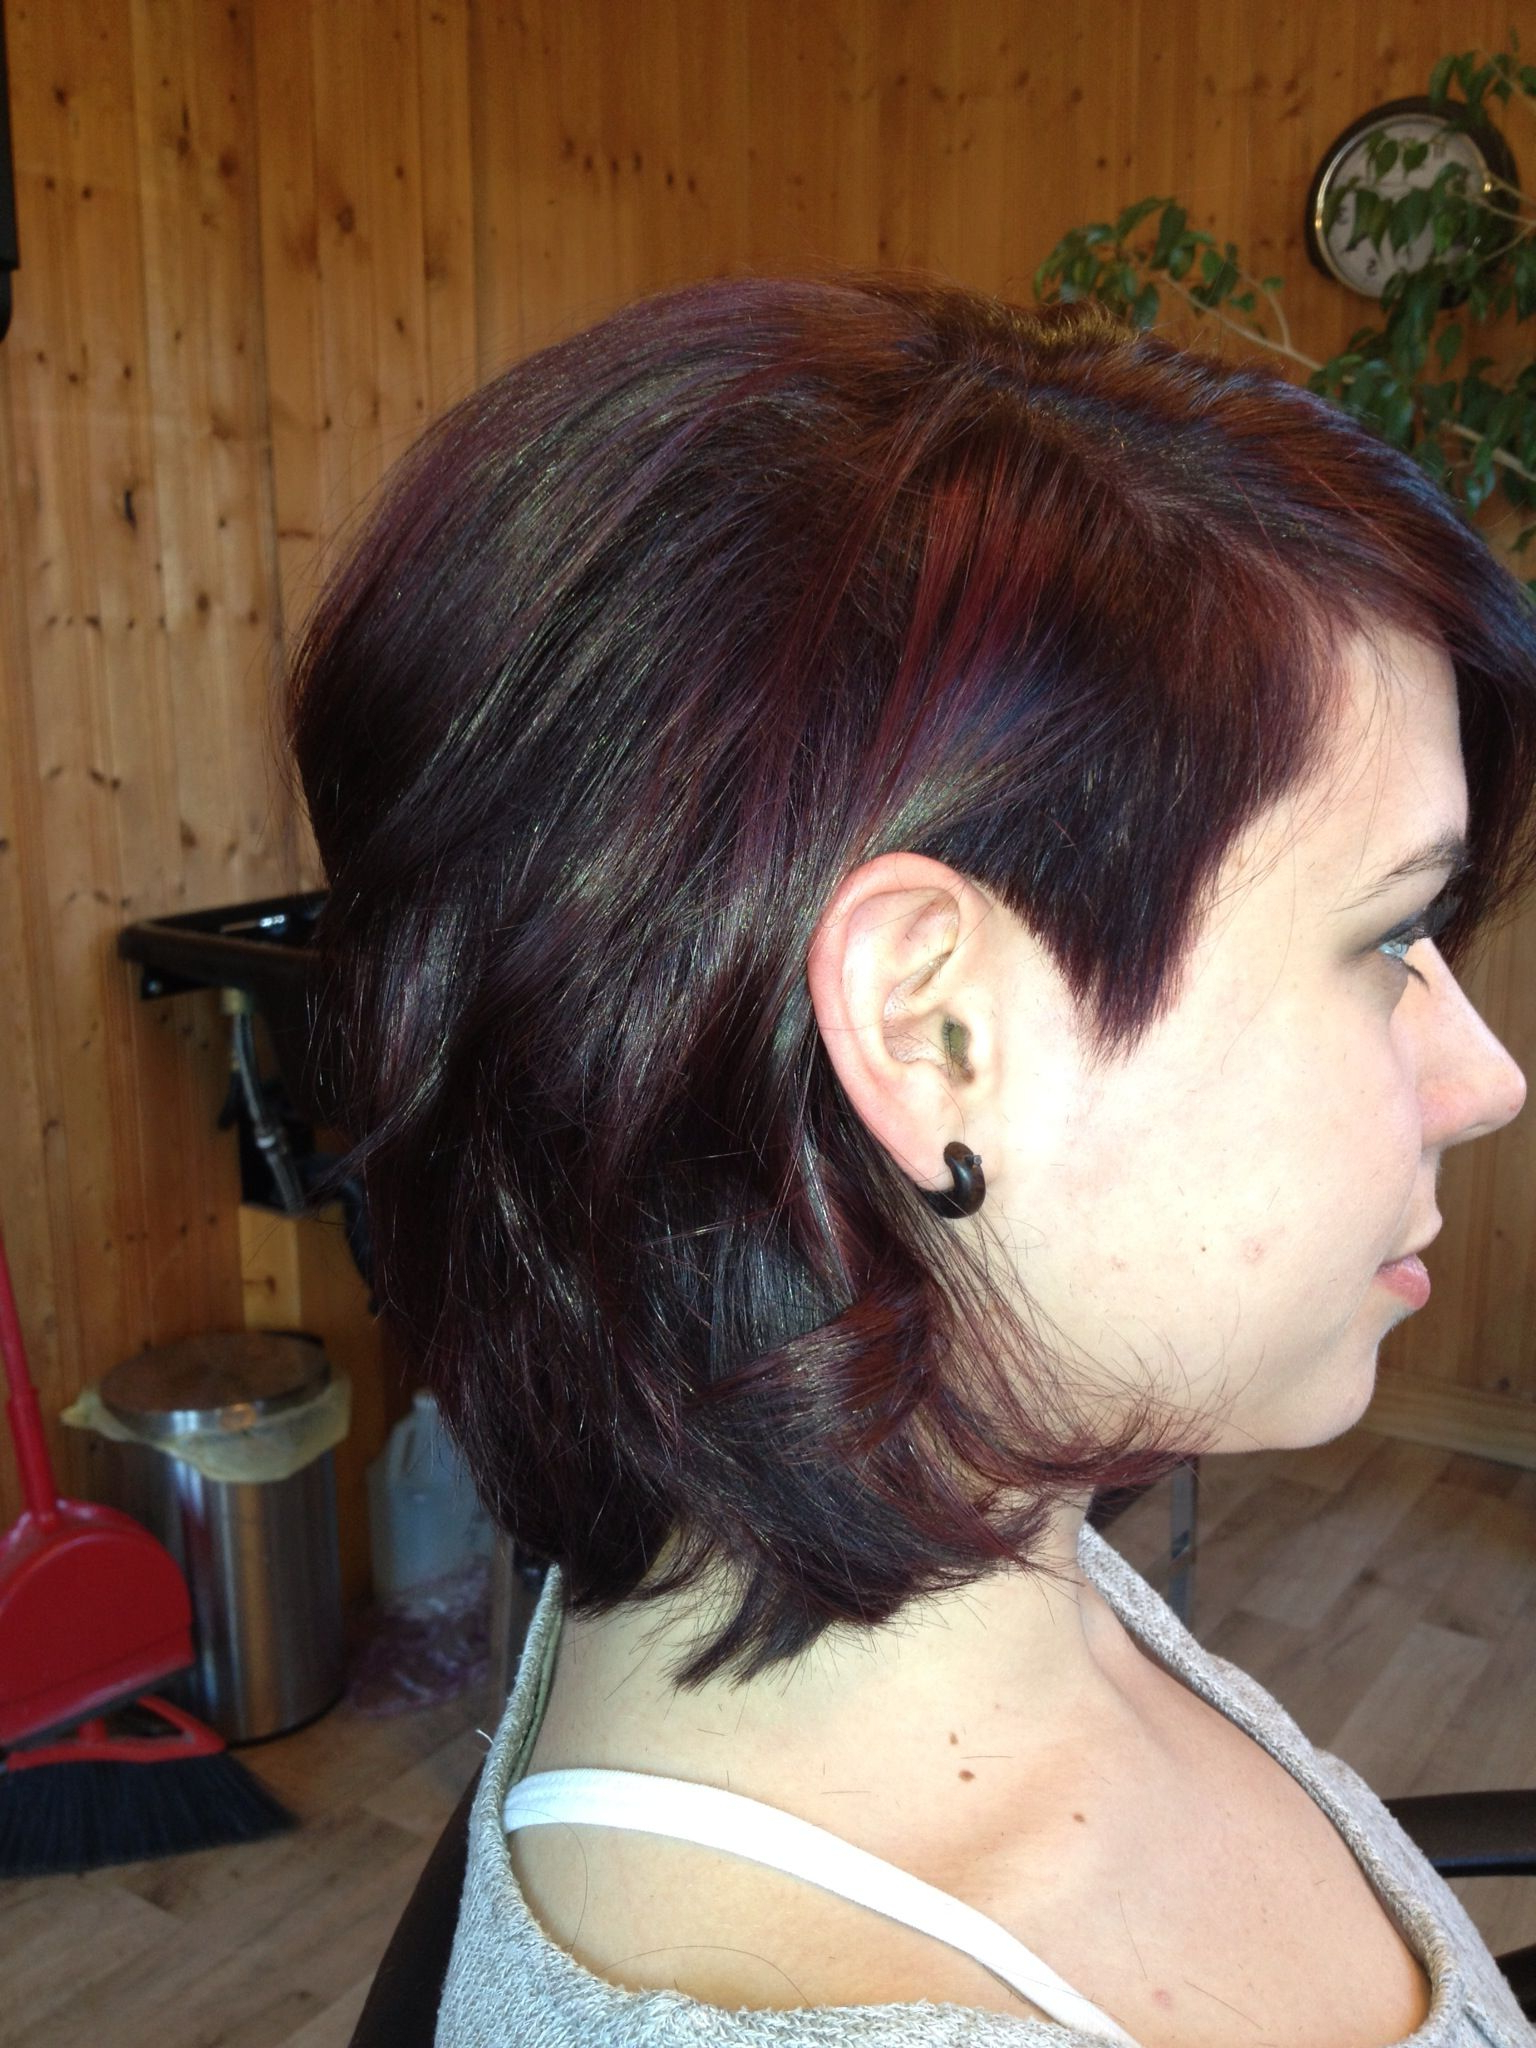 Well Known Medium Haircuts With One Side Shaved In Violet /red Color With One Side Shaved In And Asymmetrical Cut On My (View 19 of 20)